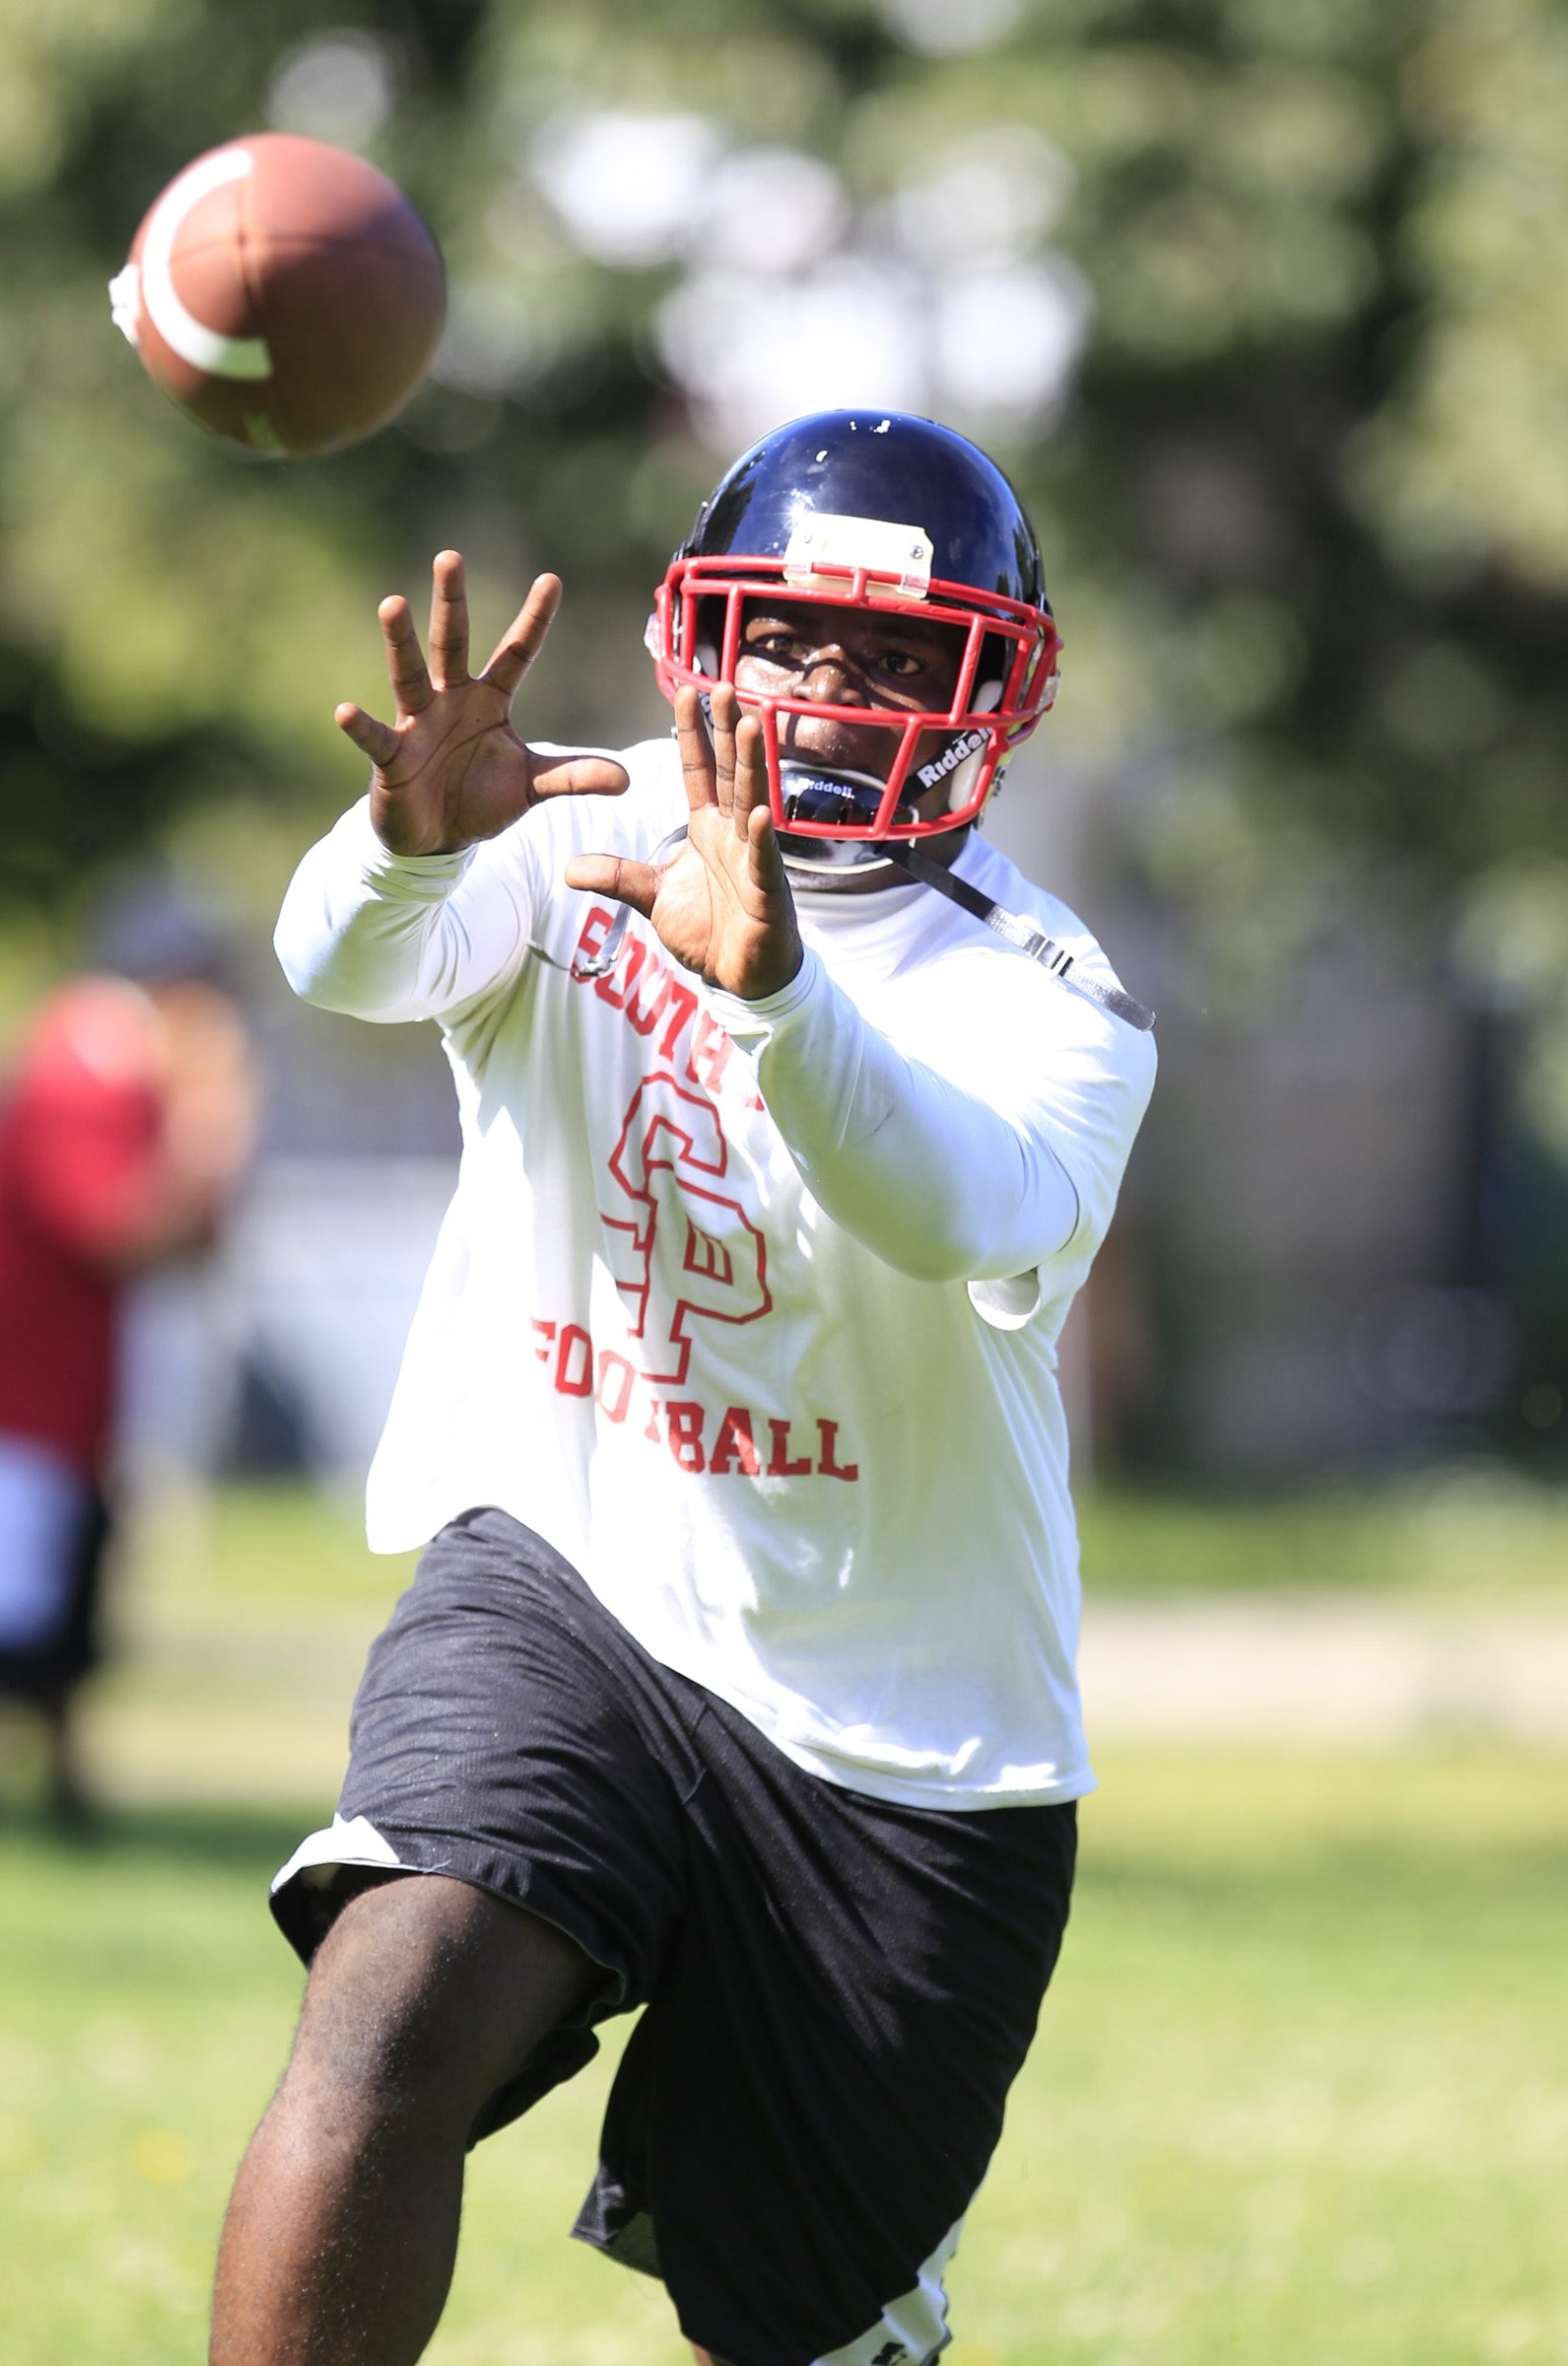 South Park senior Willquan Burgess has his eyes on the ball during the the first day of practice.